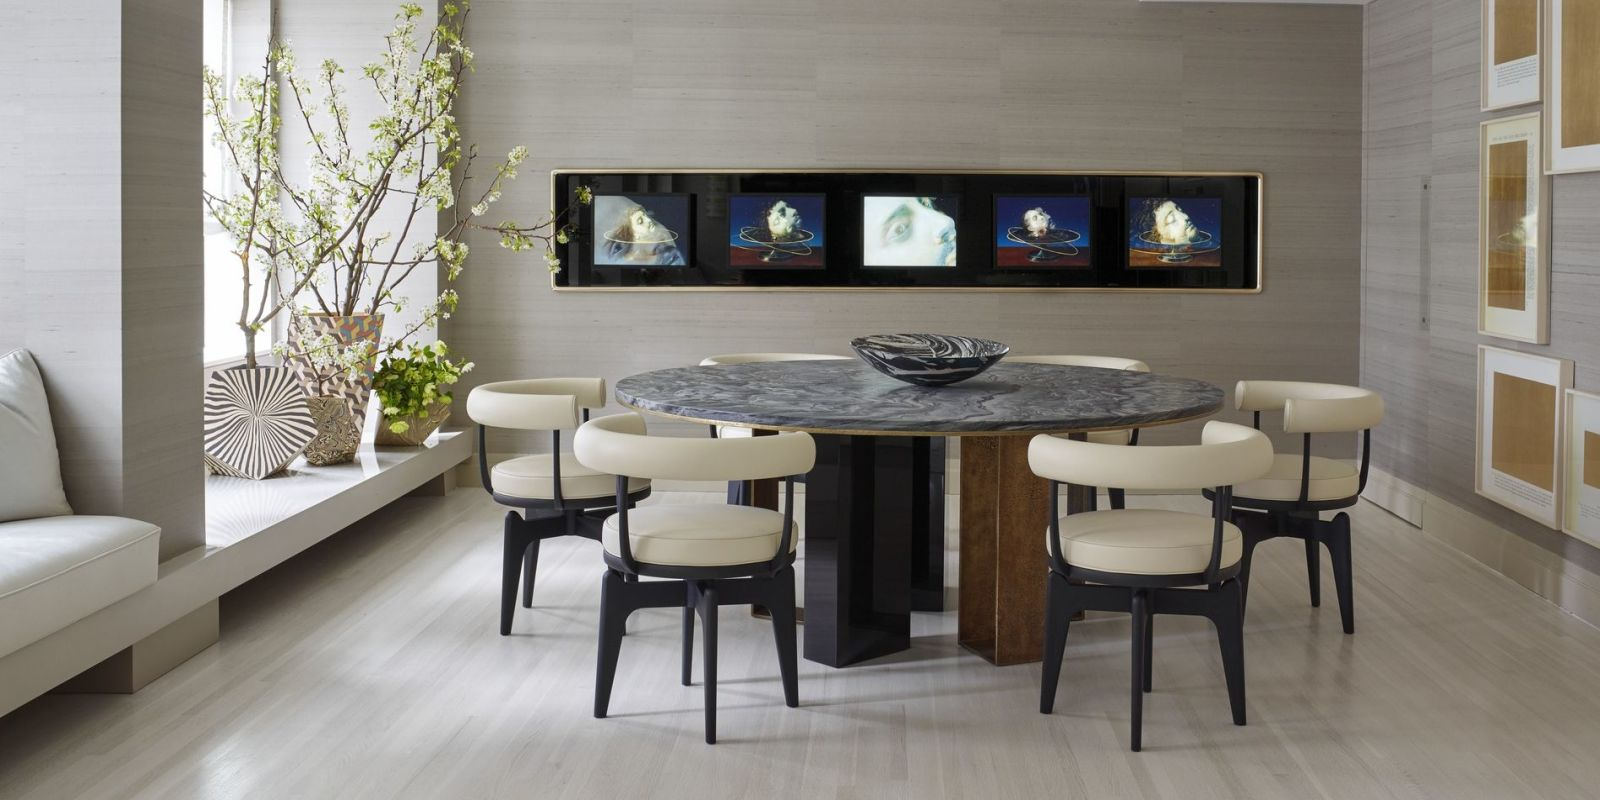 25 modern dining room decorating ideas contemporary for Designer dining room suites